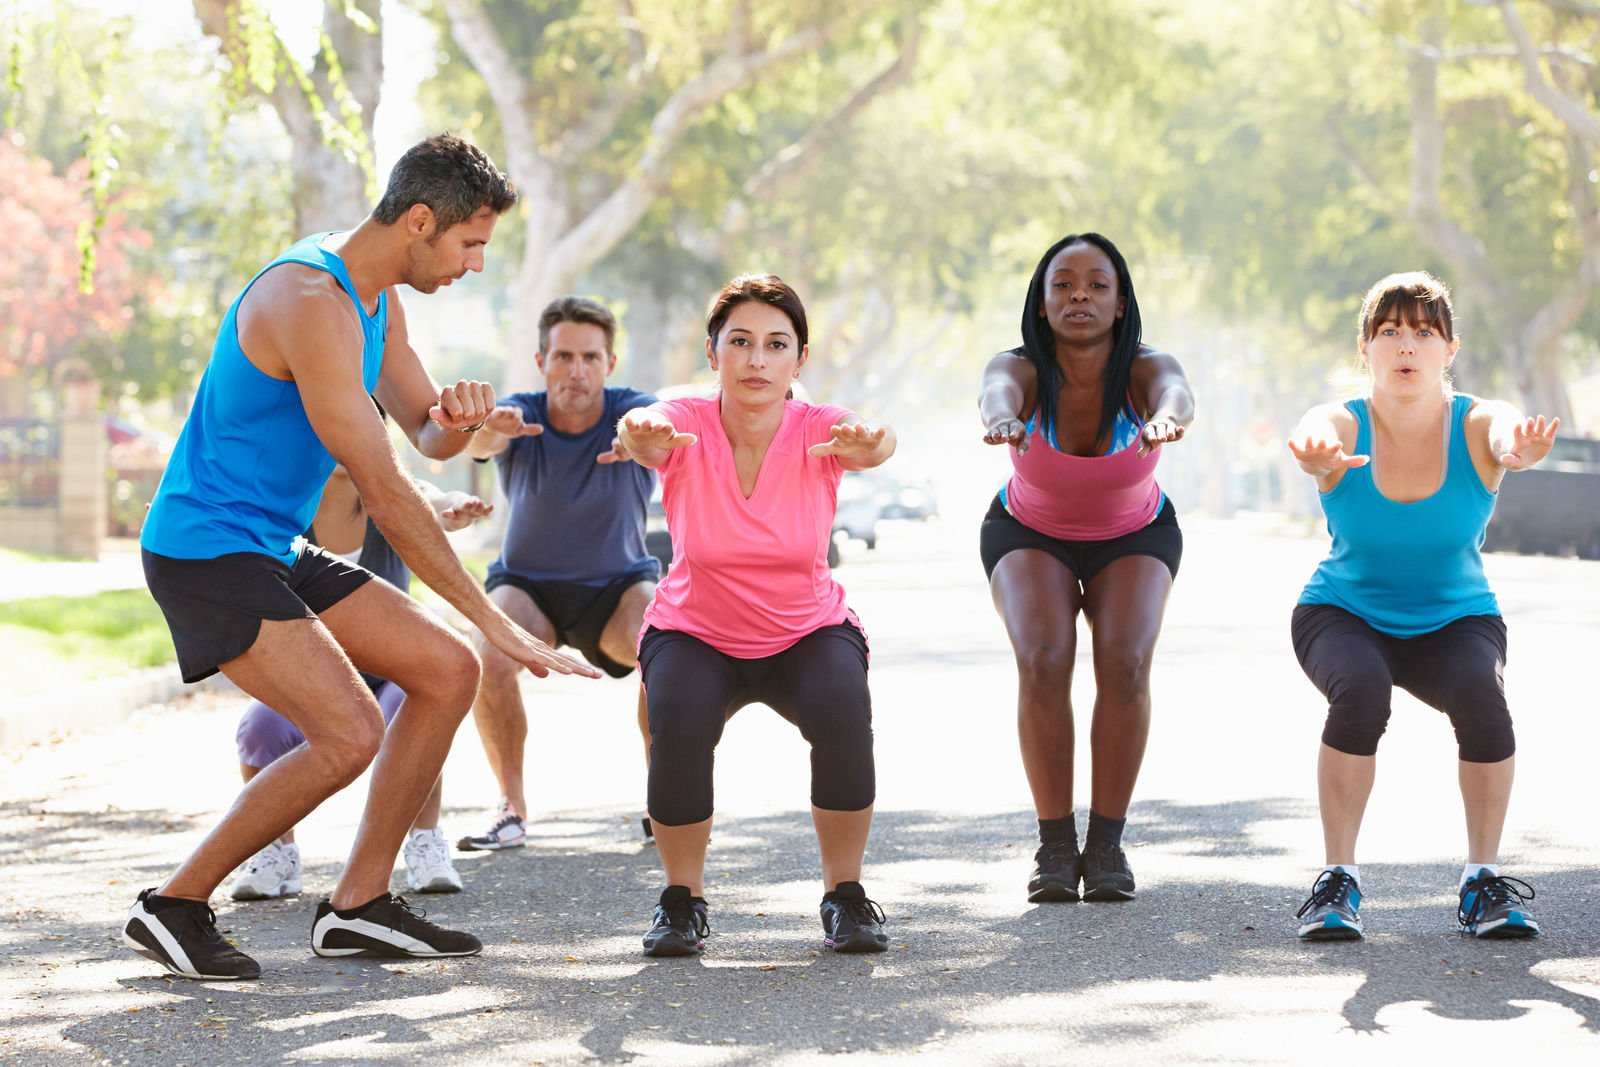 Can personal trainers teach group fitness classes?